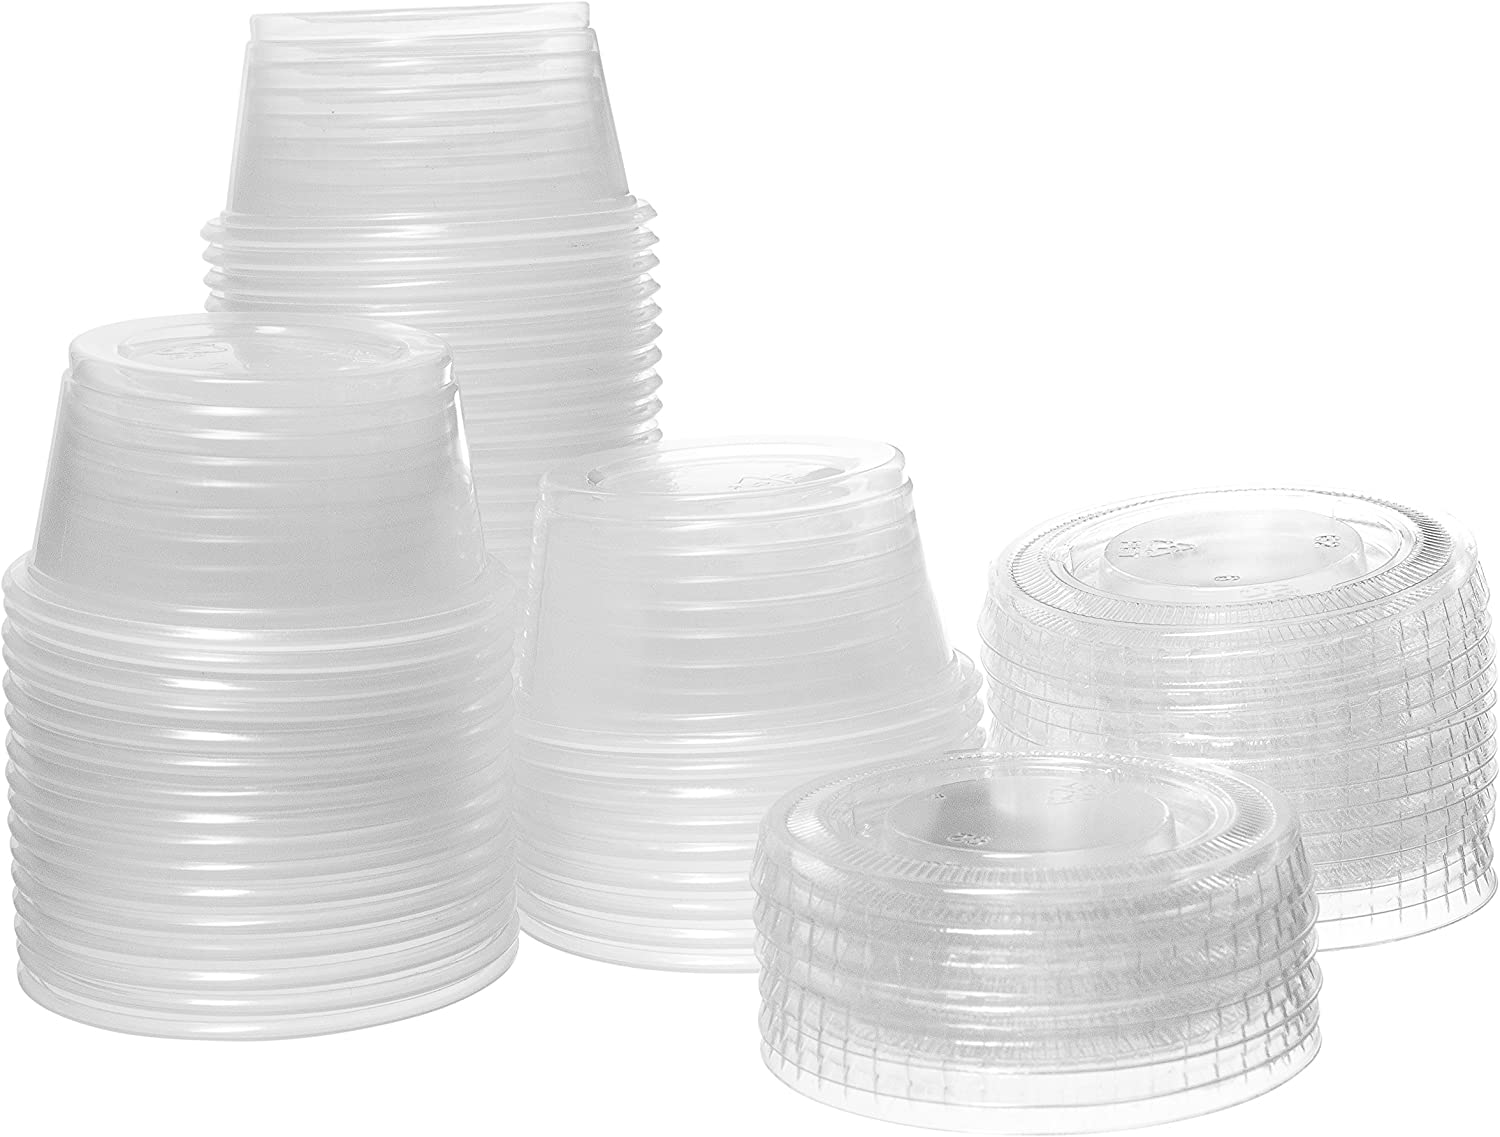 Crystalware ( 3.25 oz. 100 Sets) Disposable Plastic Portion Cups with Lids, Condiment Cups, Jello Shot, Souffle Portion, Sampling Cups – Clear